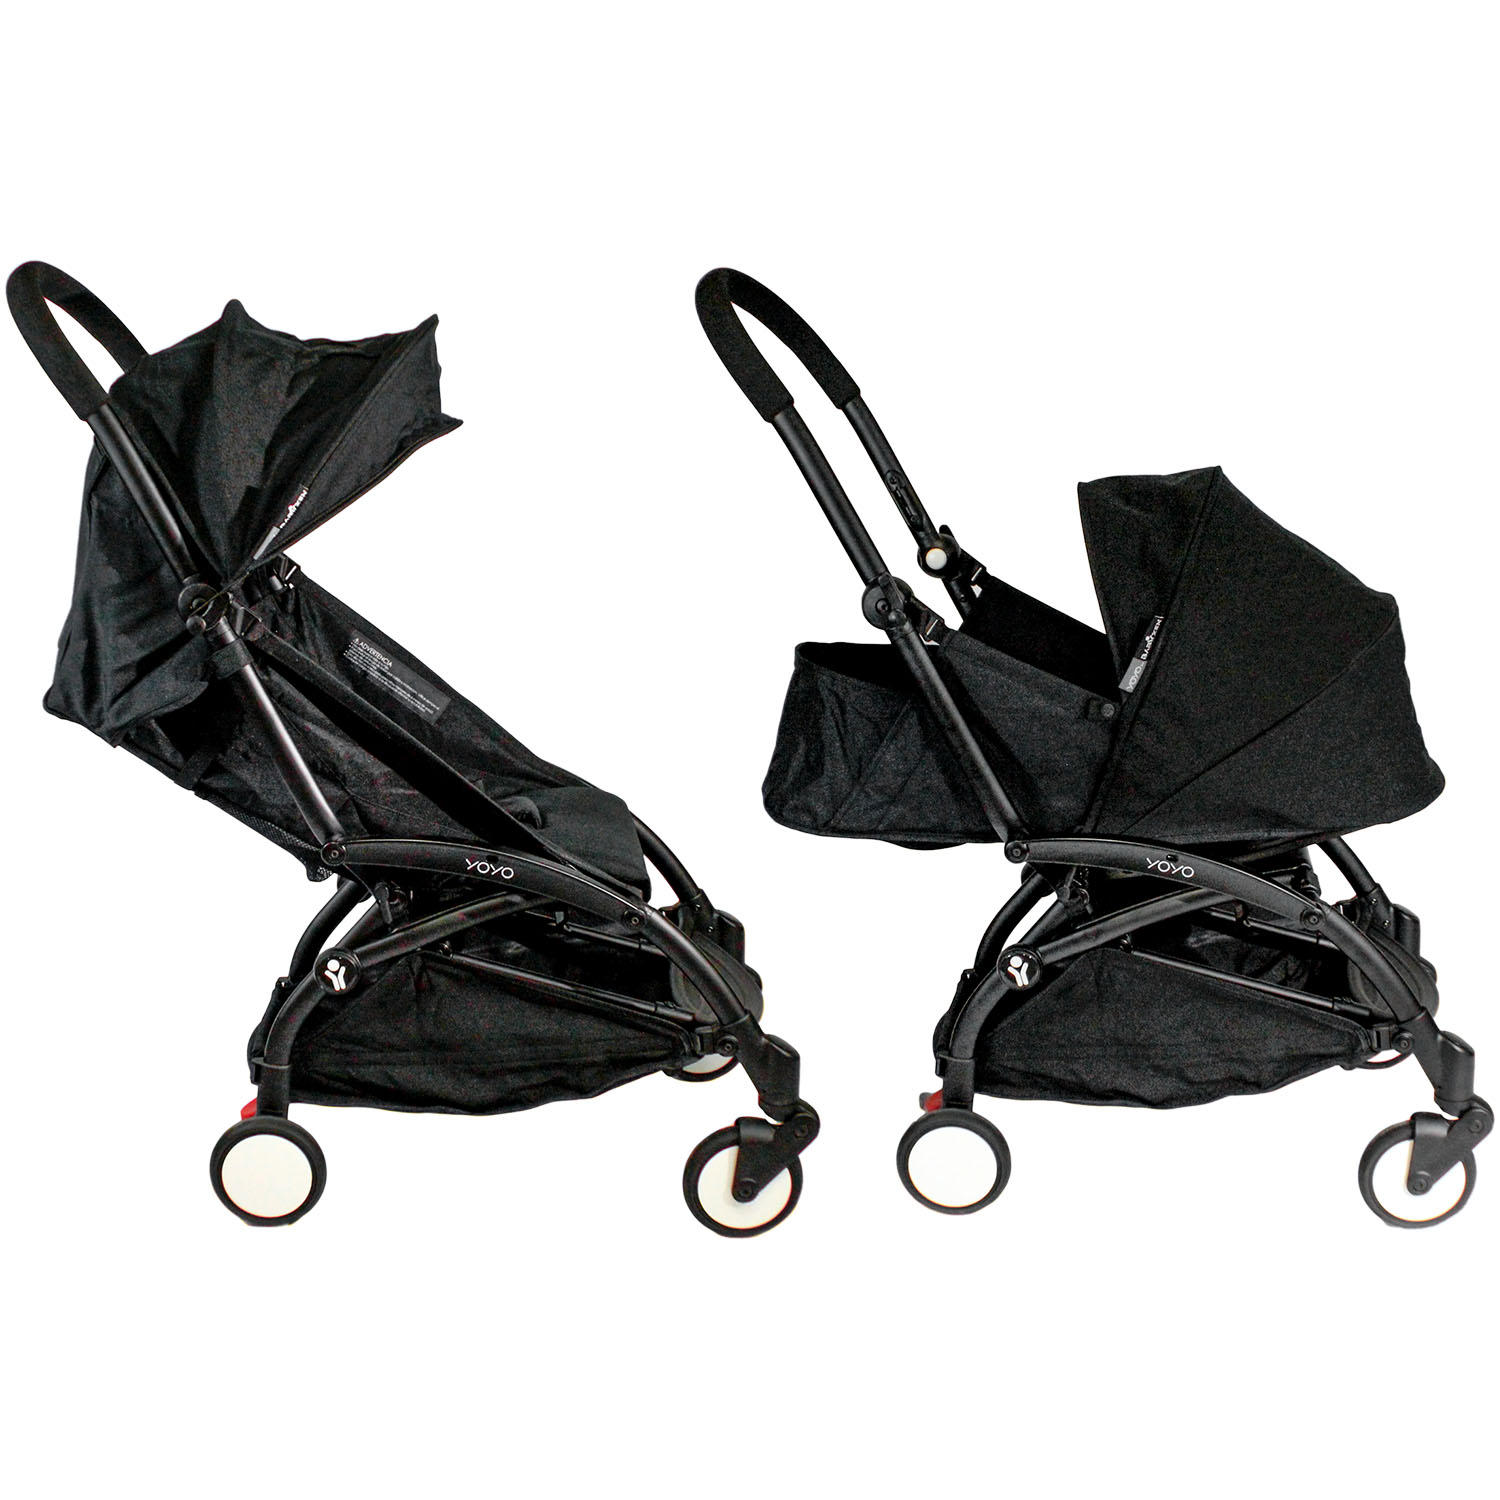 Babyzen YOYO + 0+ and 6+ Black Stroller with Bassinet, Seat and Canopy